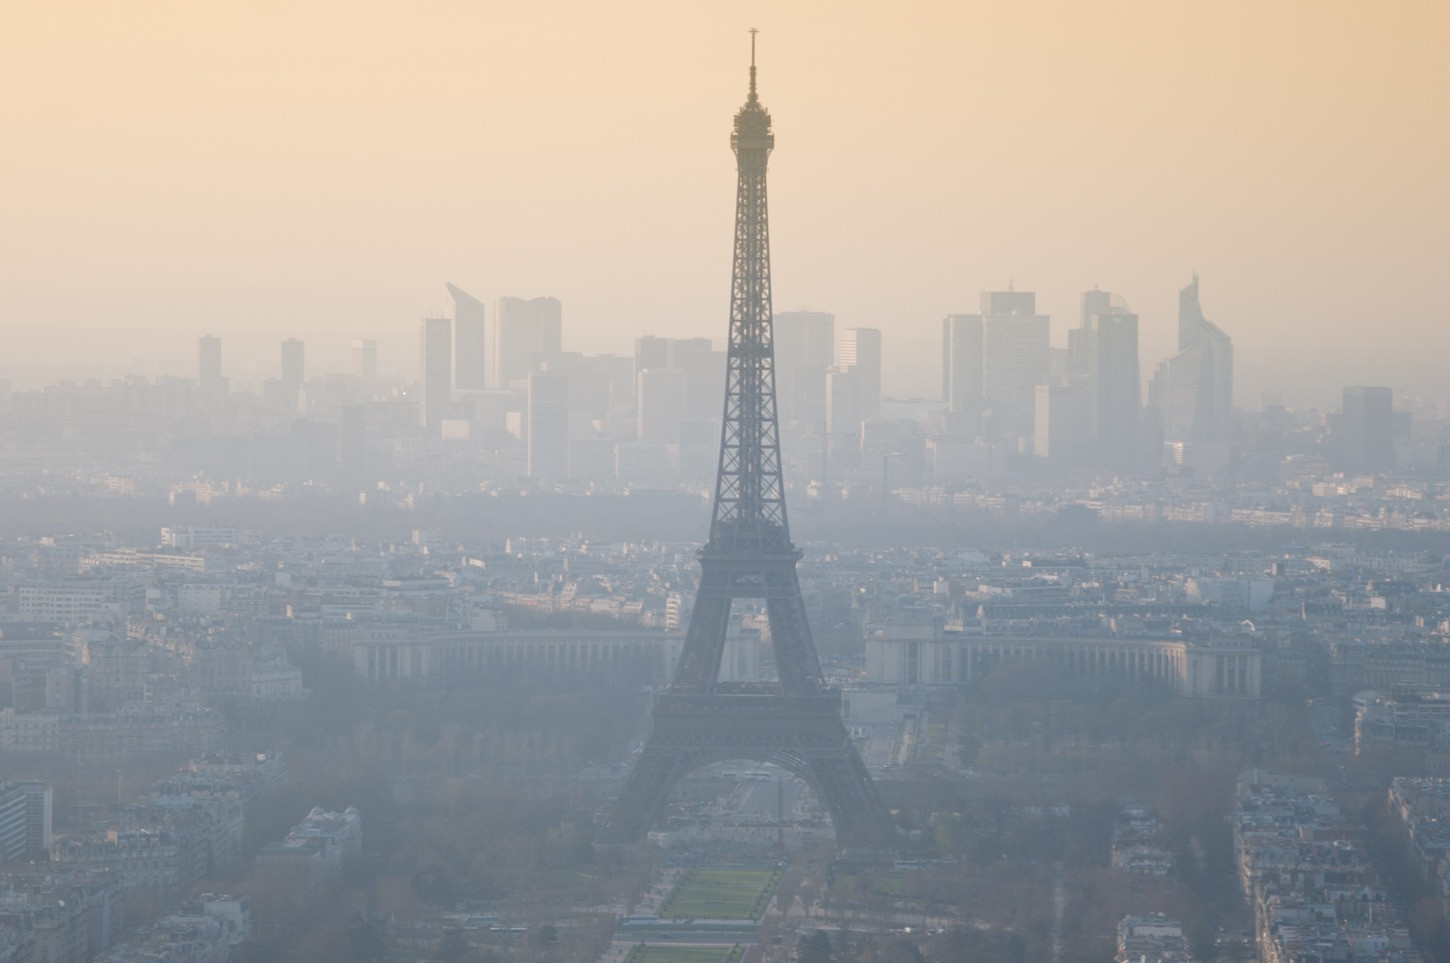 Pollution de l'air : La France condamnée par la CJUE